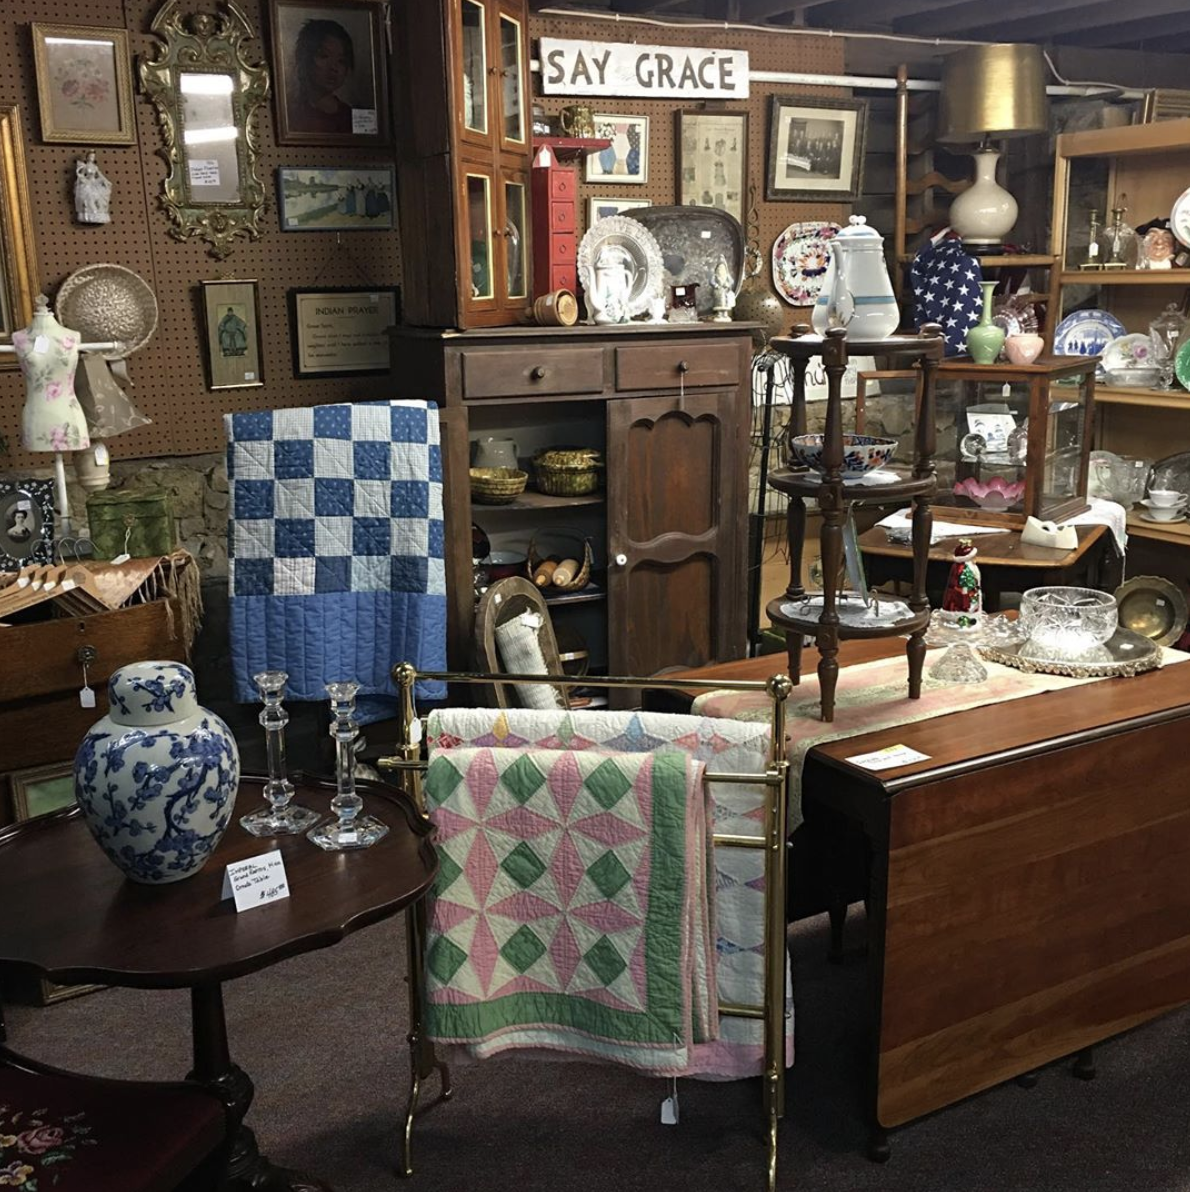 A town doesn't get a reputation as its state's best city for antiques by selling only midcentury modern. Walnut's 15 antique shops are filled with vintage glassware, fireplace mantles, and other aged beauties. In June more than 300 vendors and scores of shoppers descend on the town for the annual Walnut Antique Show, filling two indoor halls and 17 blocks—just about the entire town. You'll also want to check out Granary Mall and Mabel's Old Fashioned Rose.